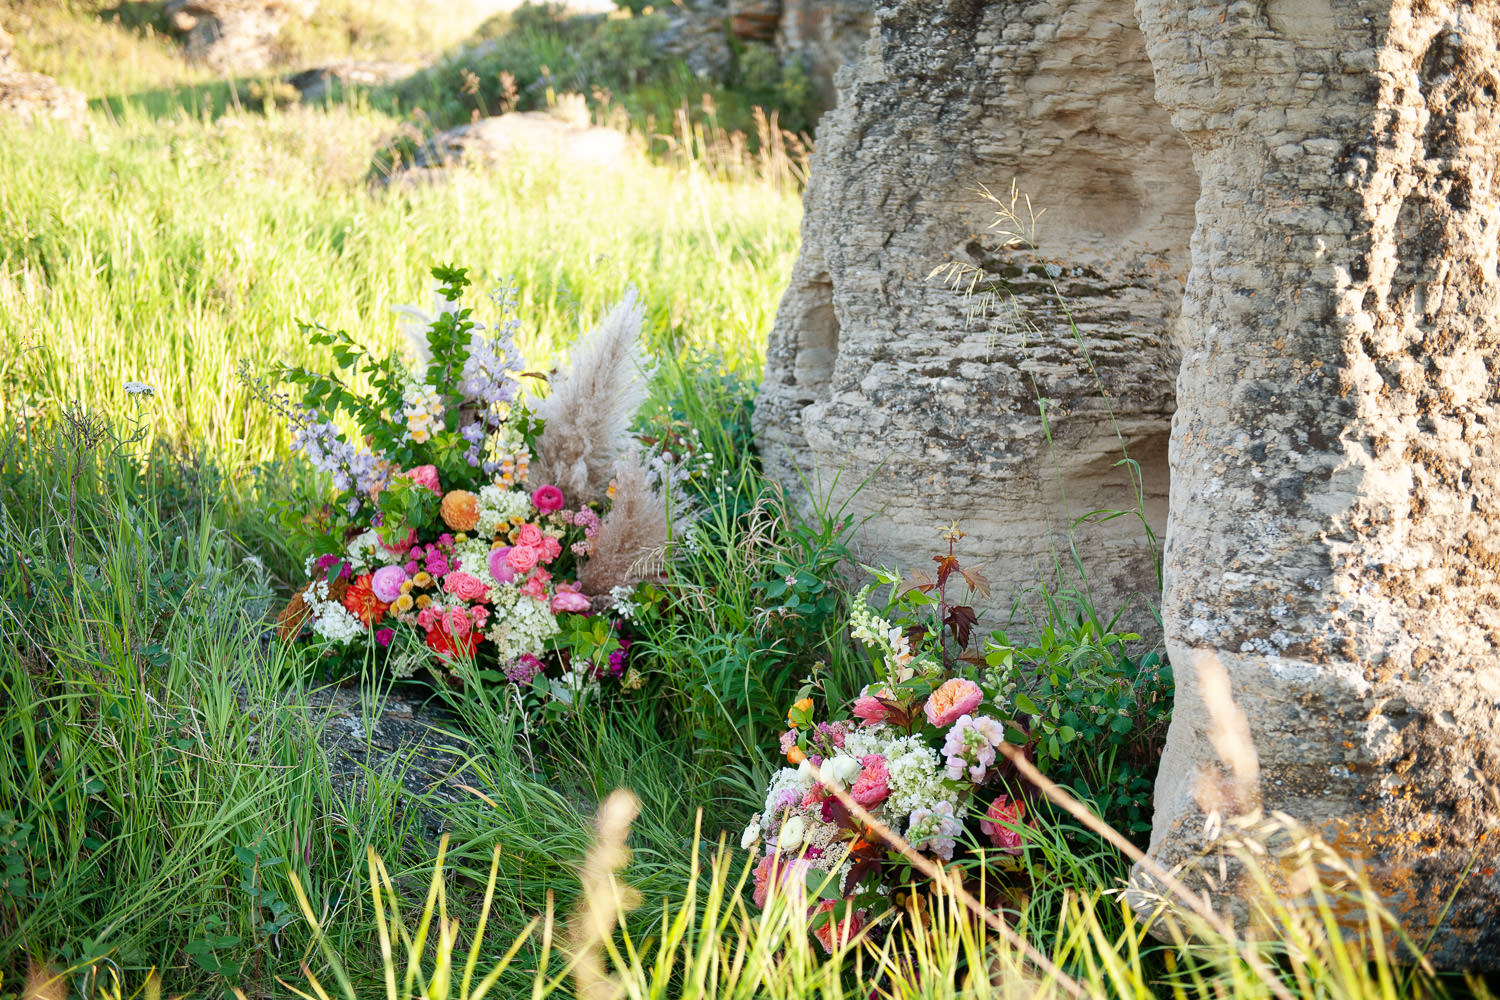 Flower arrangements at a ceremony site captured by Tara Whittaker Photography